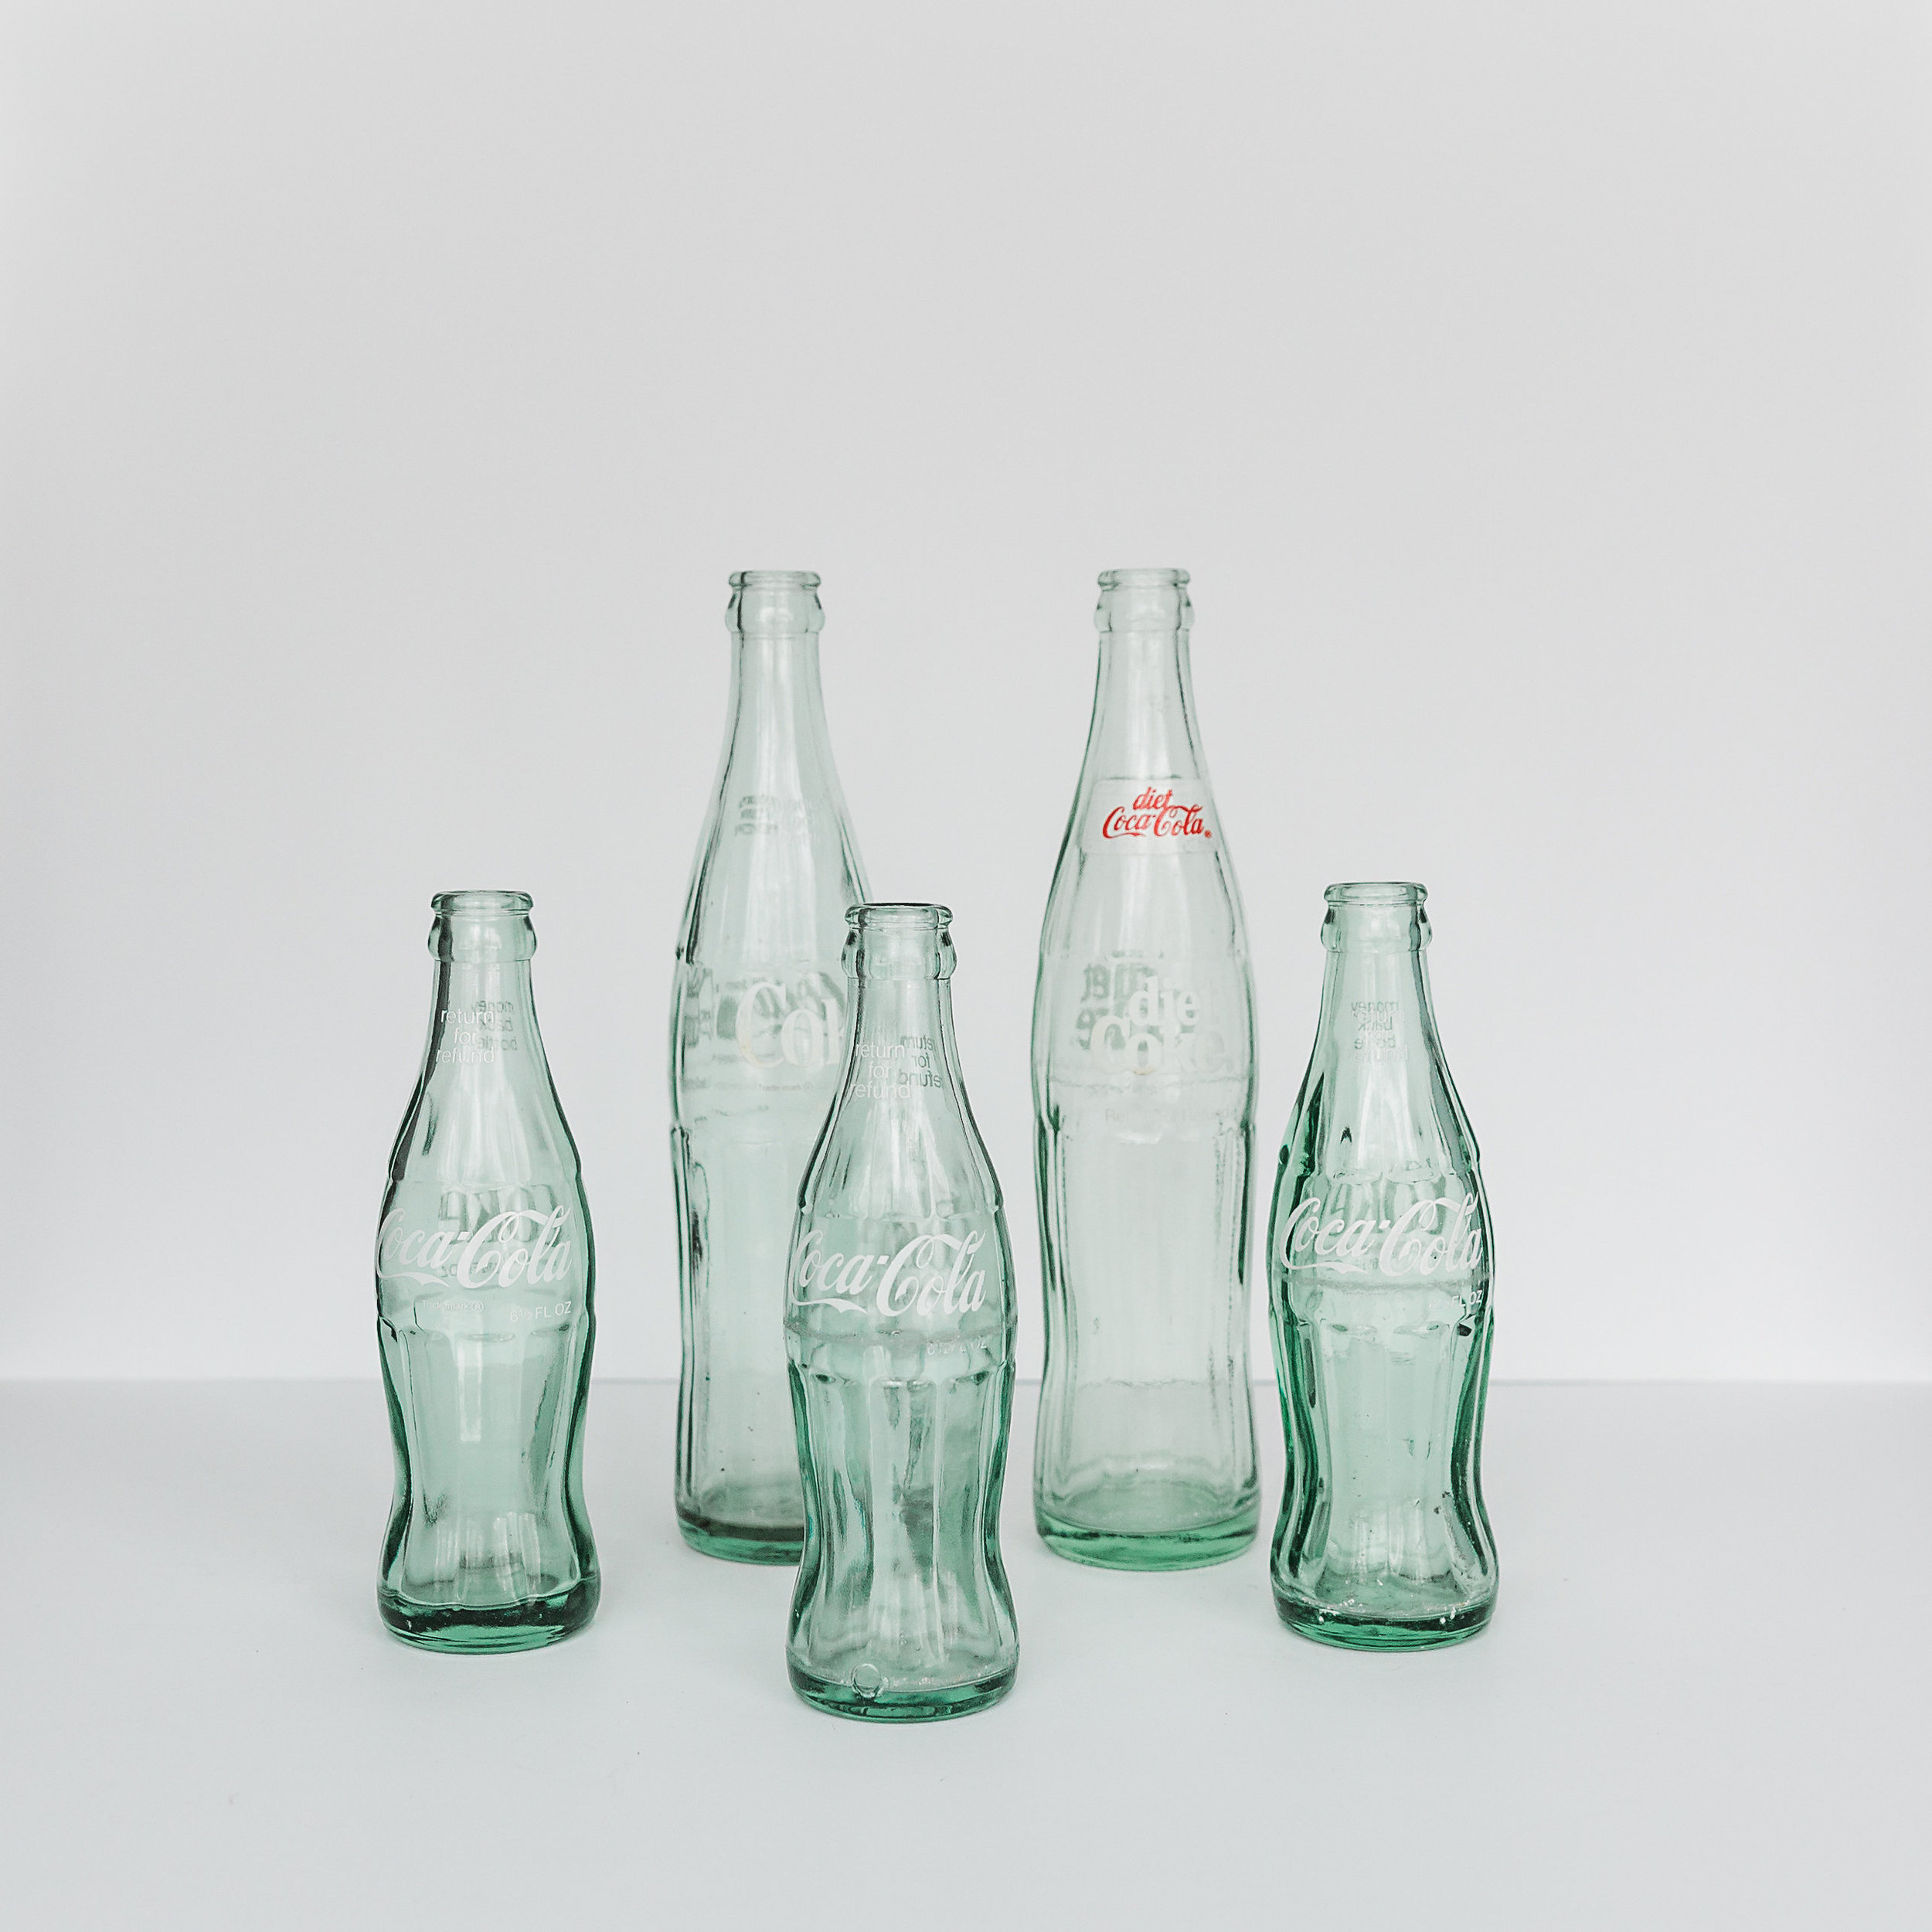 Pop Bottle Collection  various heights >>>$0.25 each<<<